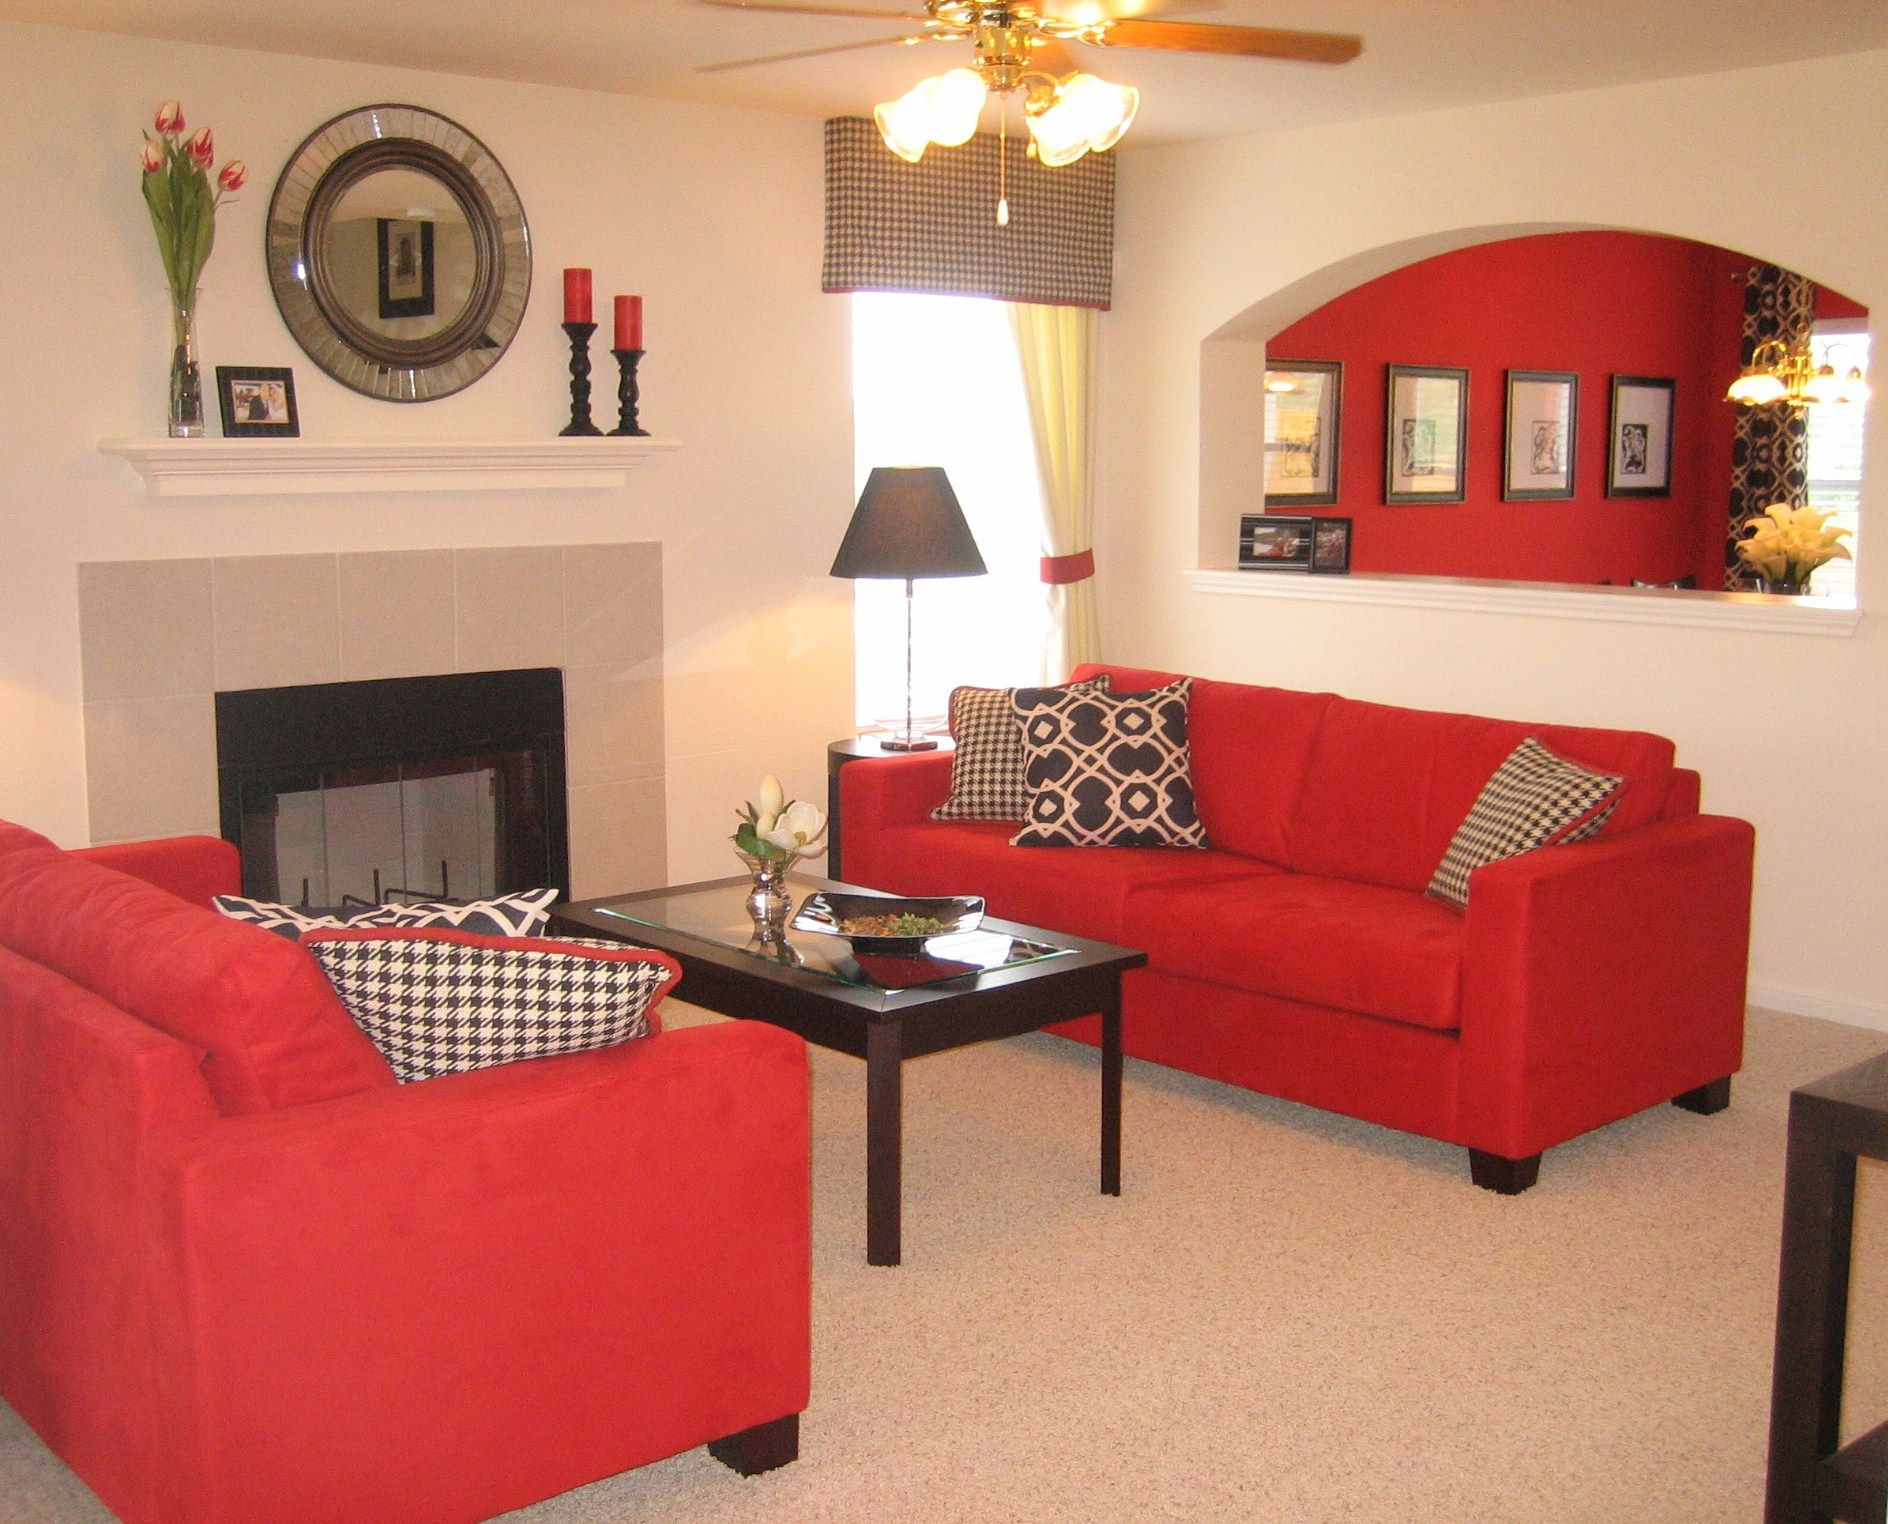 Cream And Red Living Room Design Red Sofa Living Room Red Couch Living Room Living Room Red